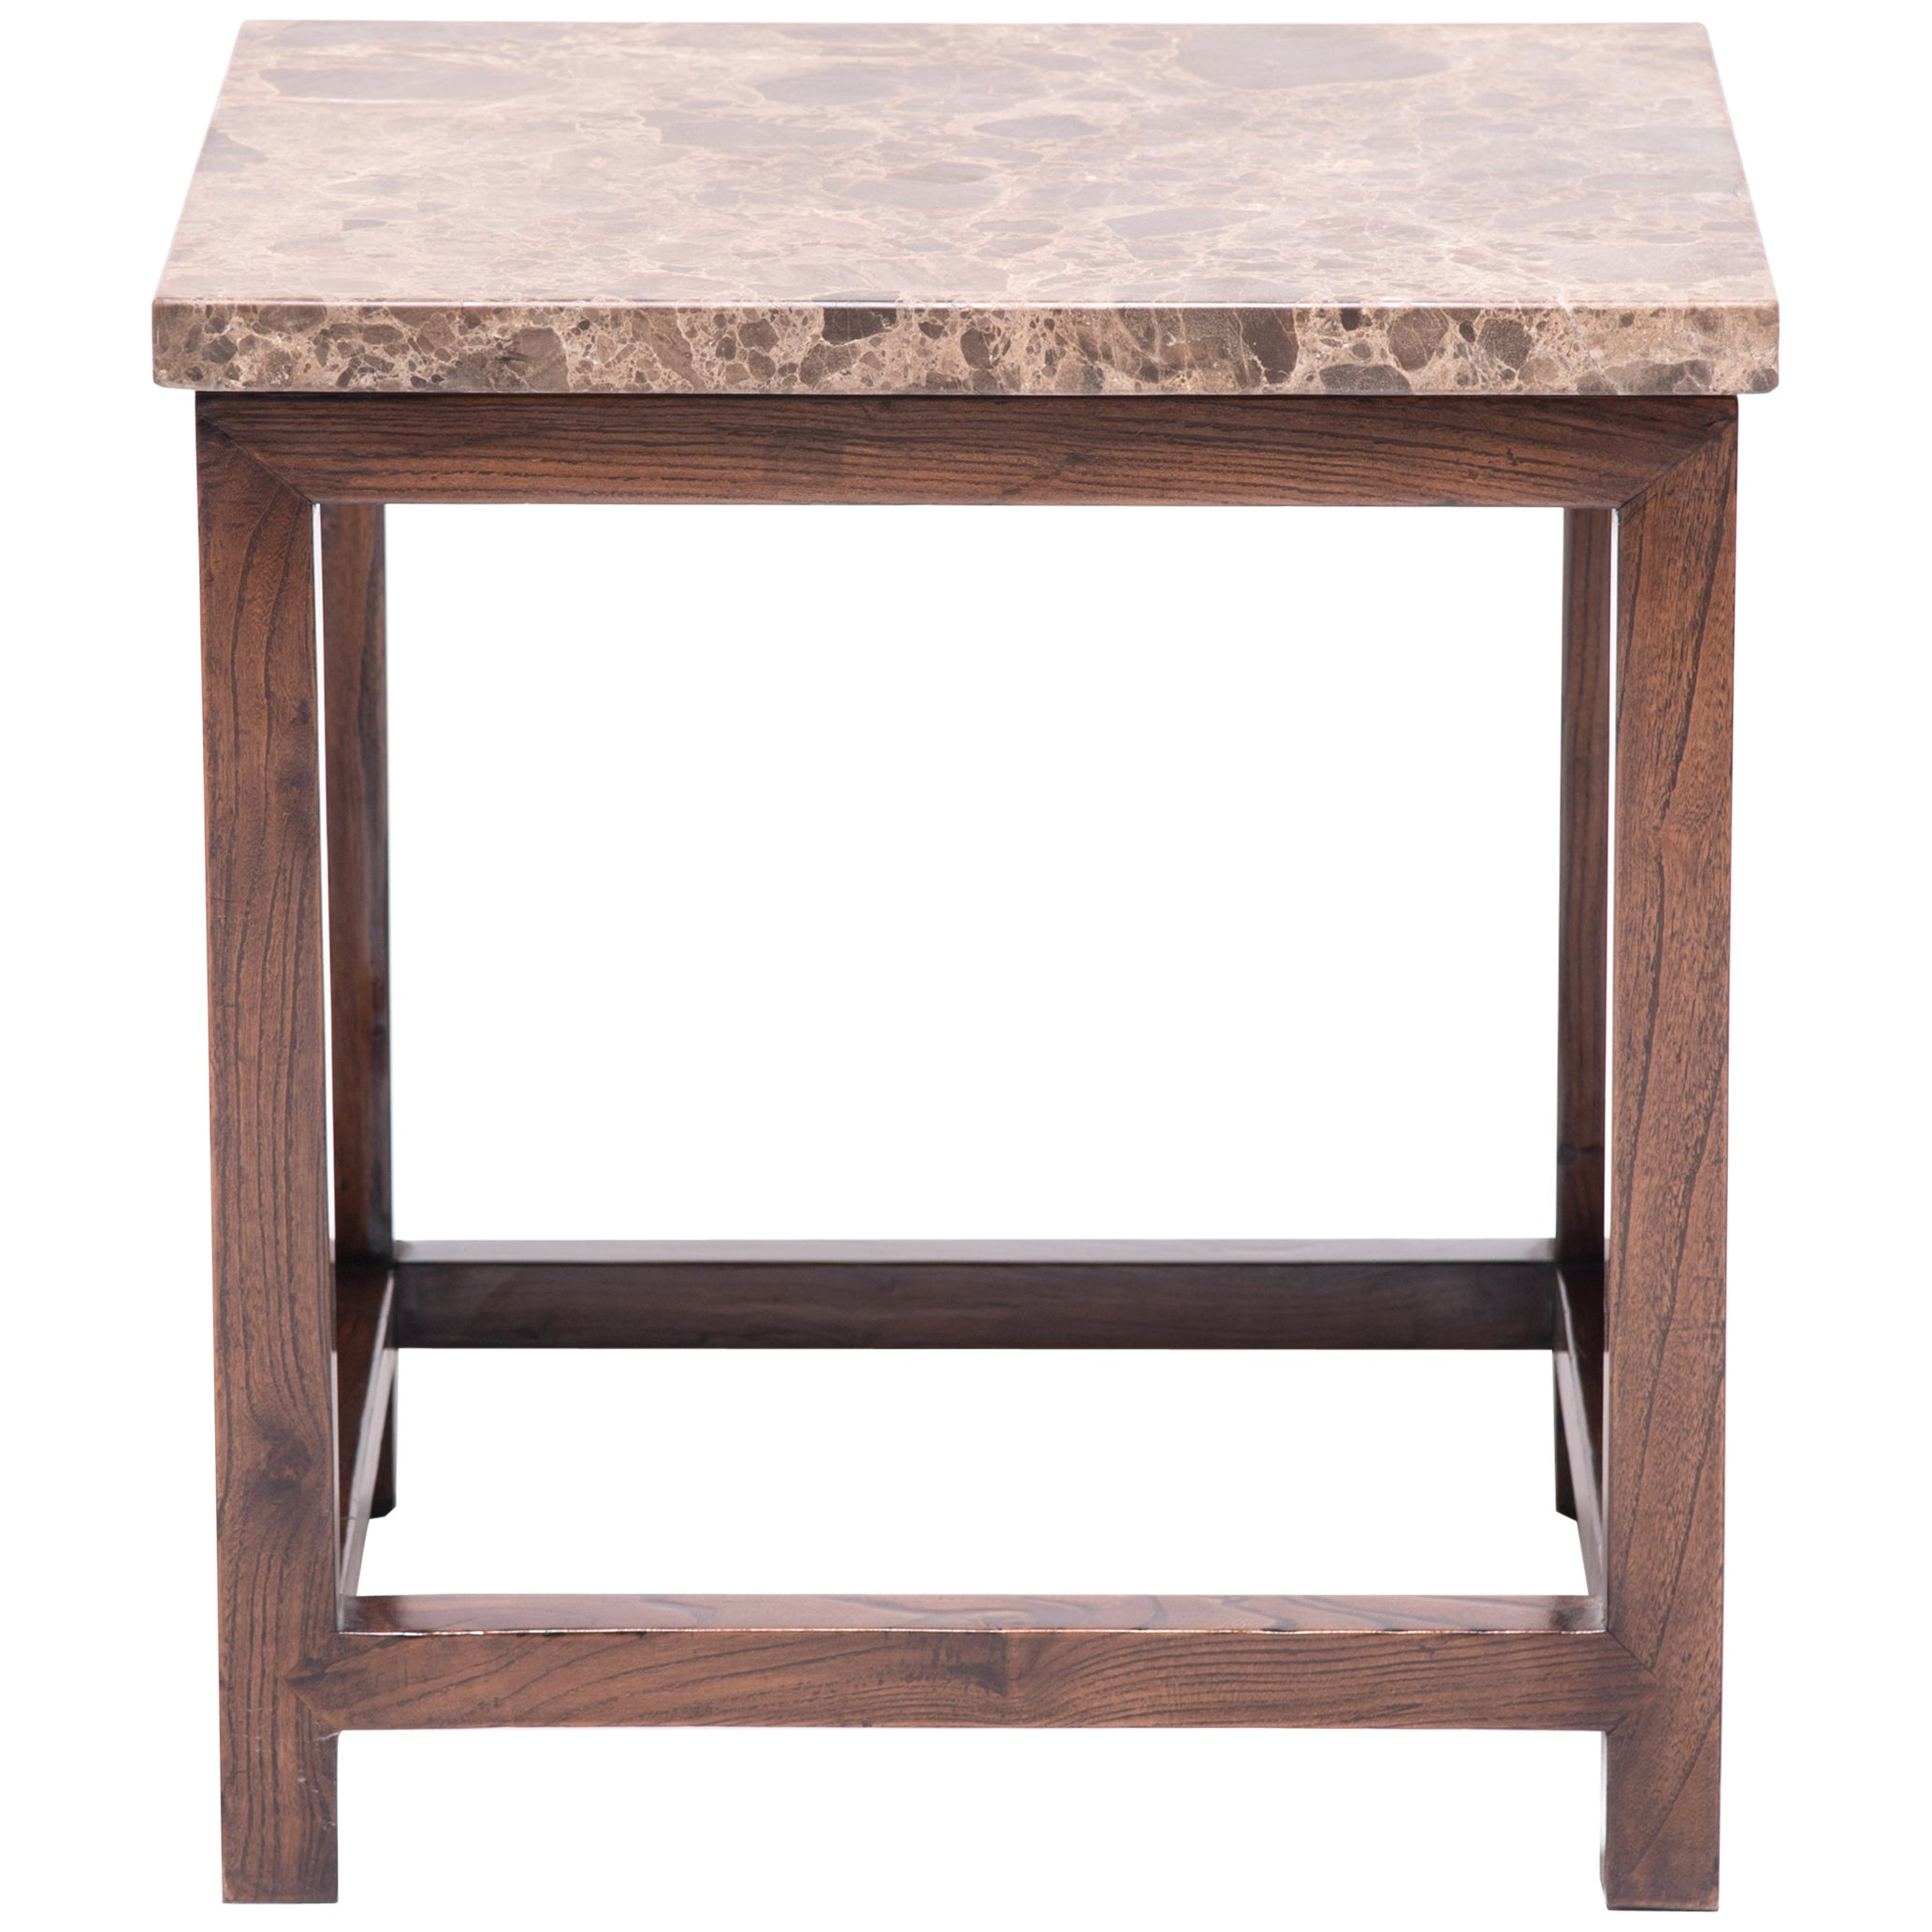 Marble-Top Square Side Table